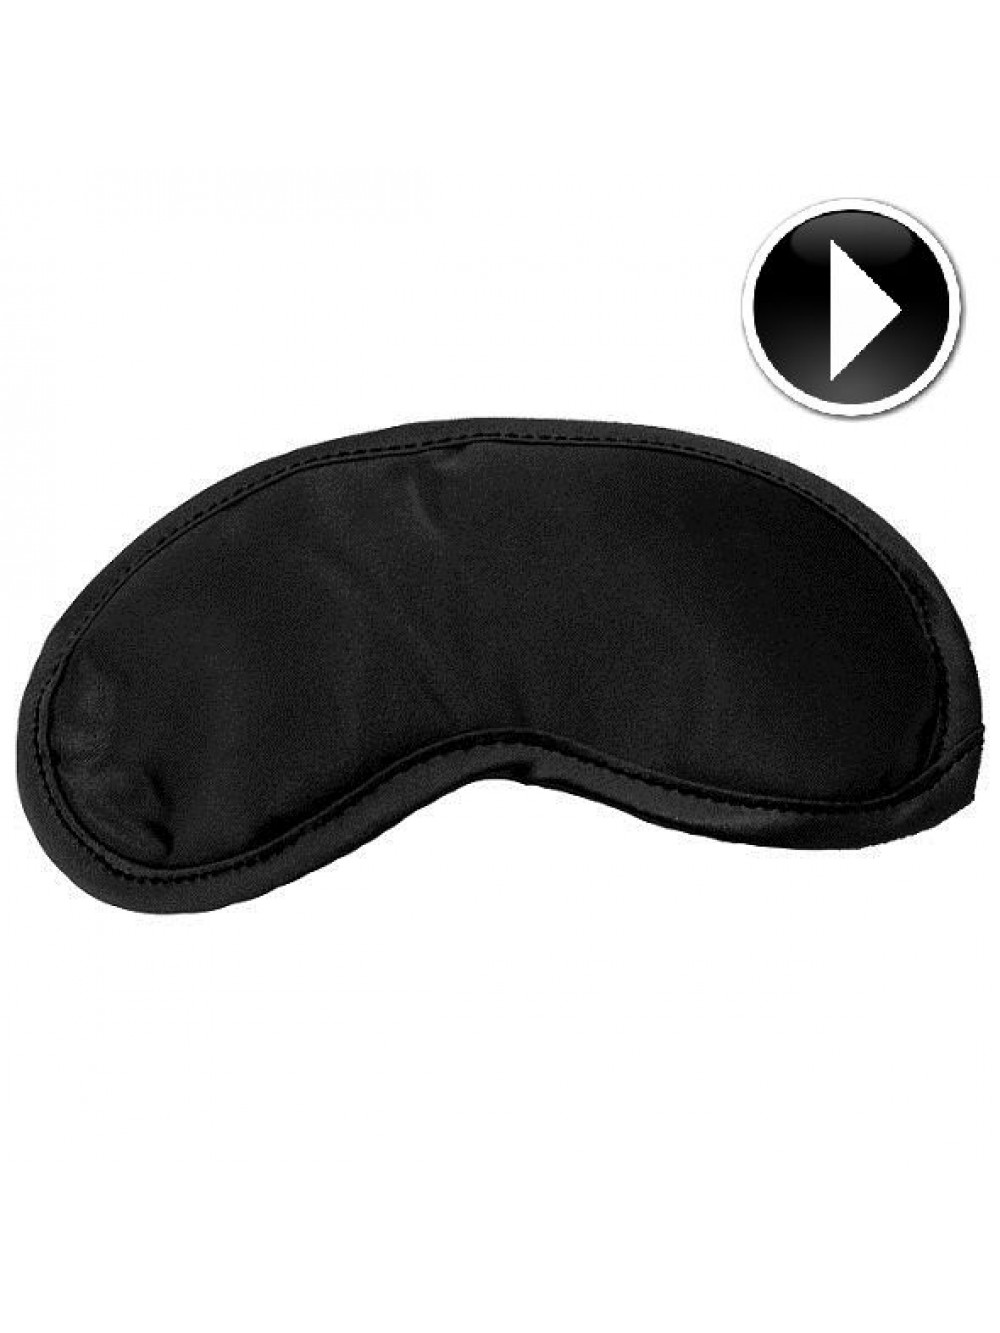 SEX & MICHIEF SATIN BLINDFOLD BLACK,